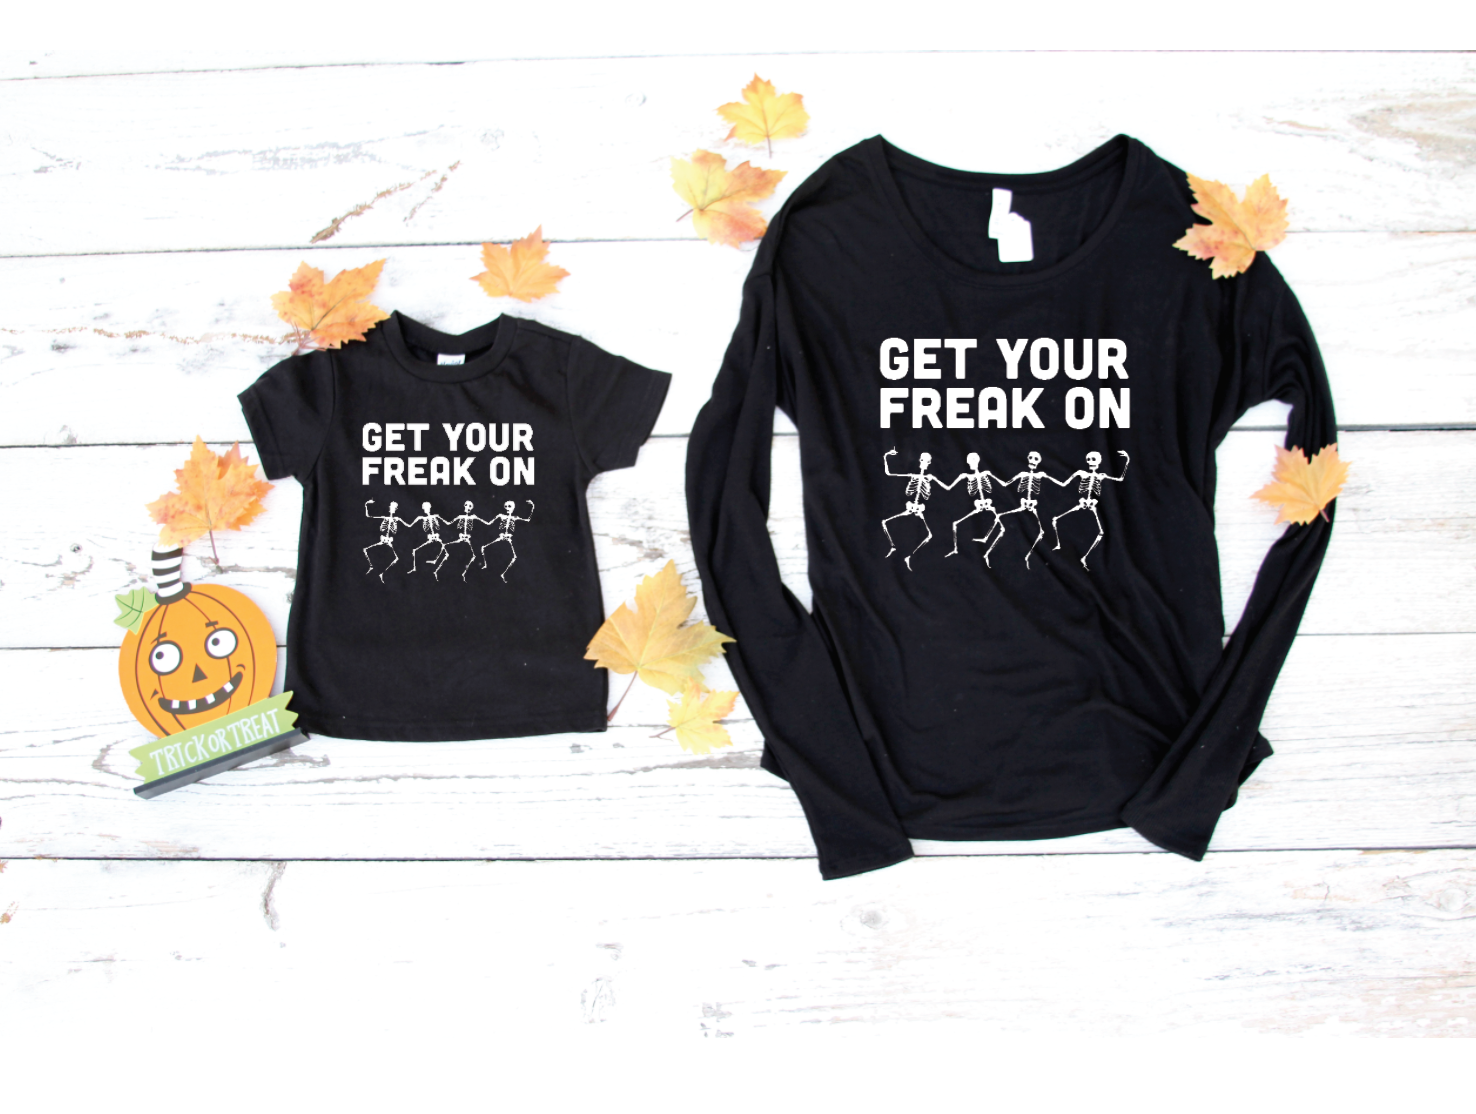 5ed2532c9 Get Your Freak On skeleton t-shirt comes in kids and adult sizes! Be cute  and coordinated this #Halloween season with these matching tees!